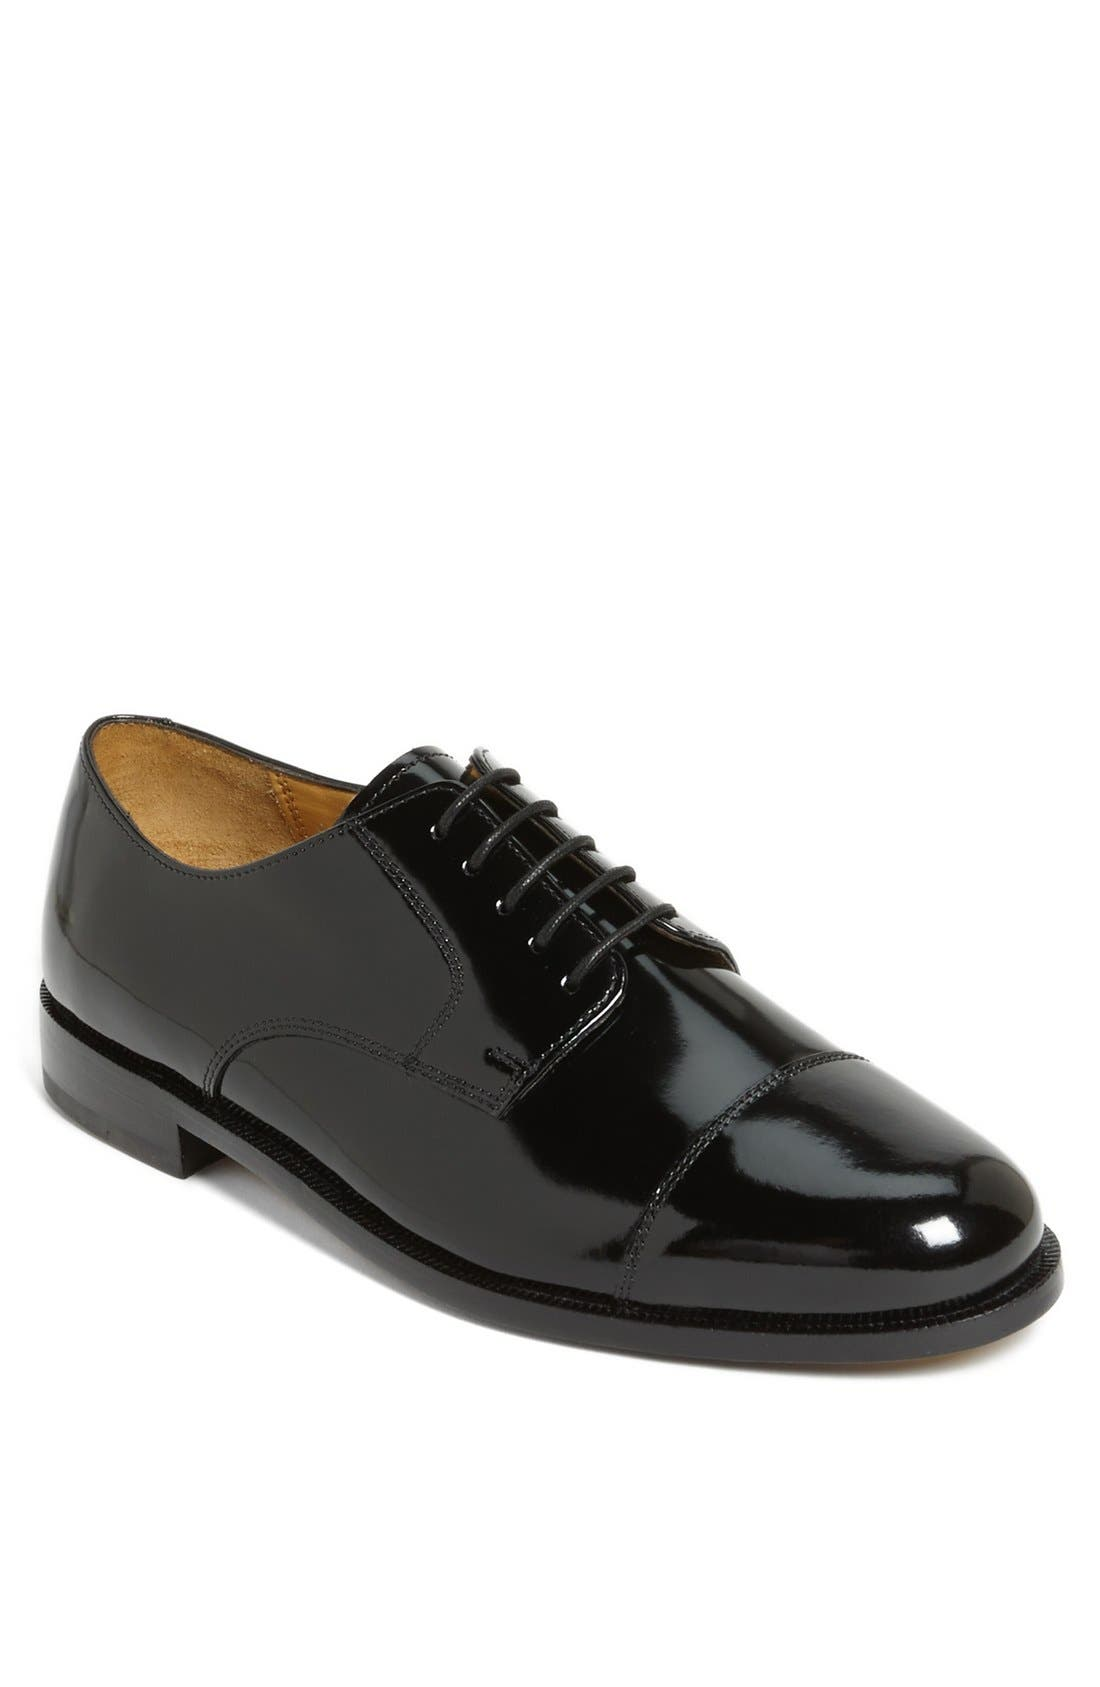 Main Image - Cole Haan 'Caldwell' Derby (Online Only)   (Men)